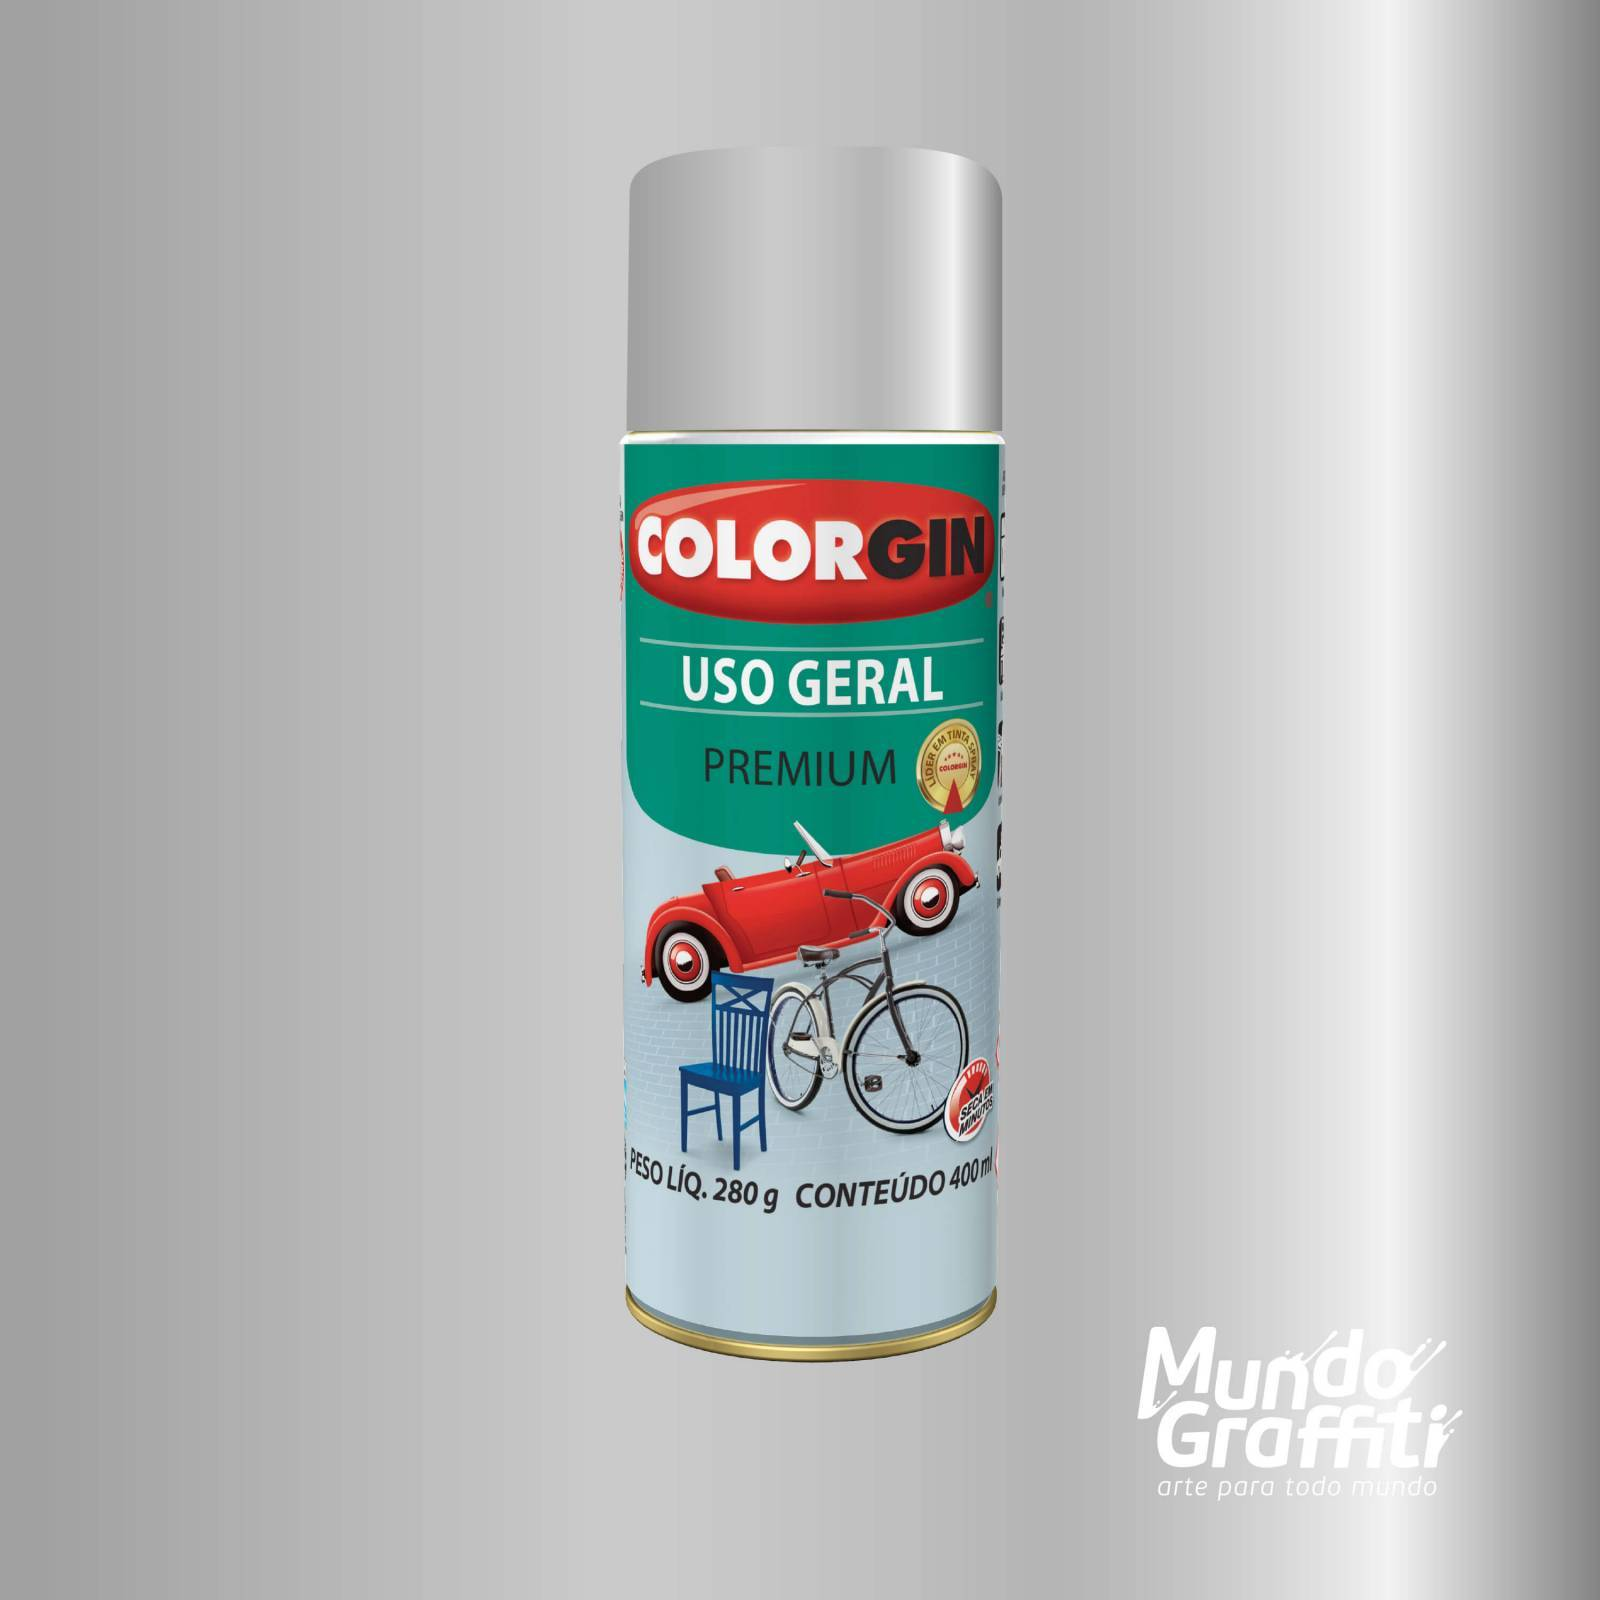 Tinta Spray Colorgin Uso Geral 57061 Prata Real Metalico 400 - Mundo Graffiti